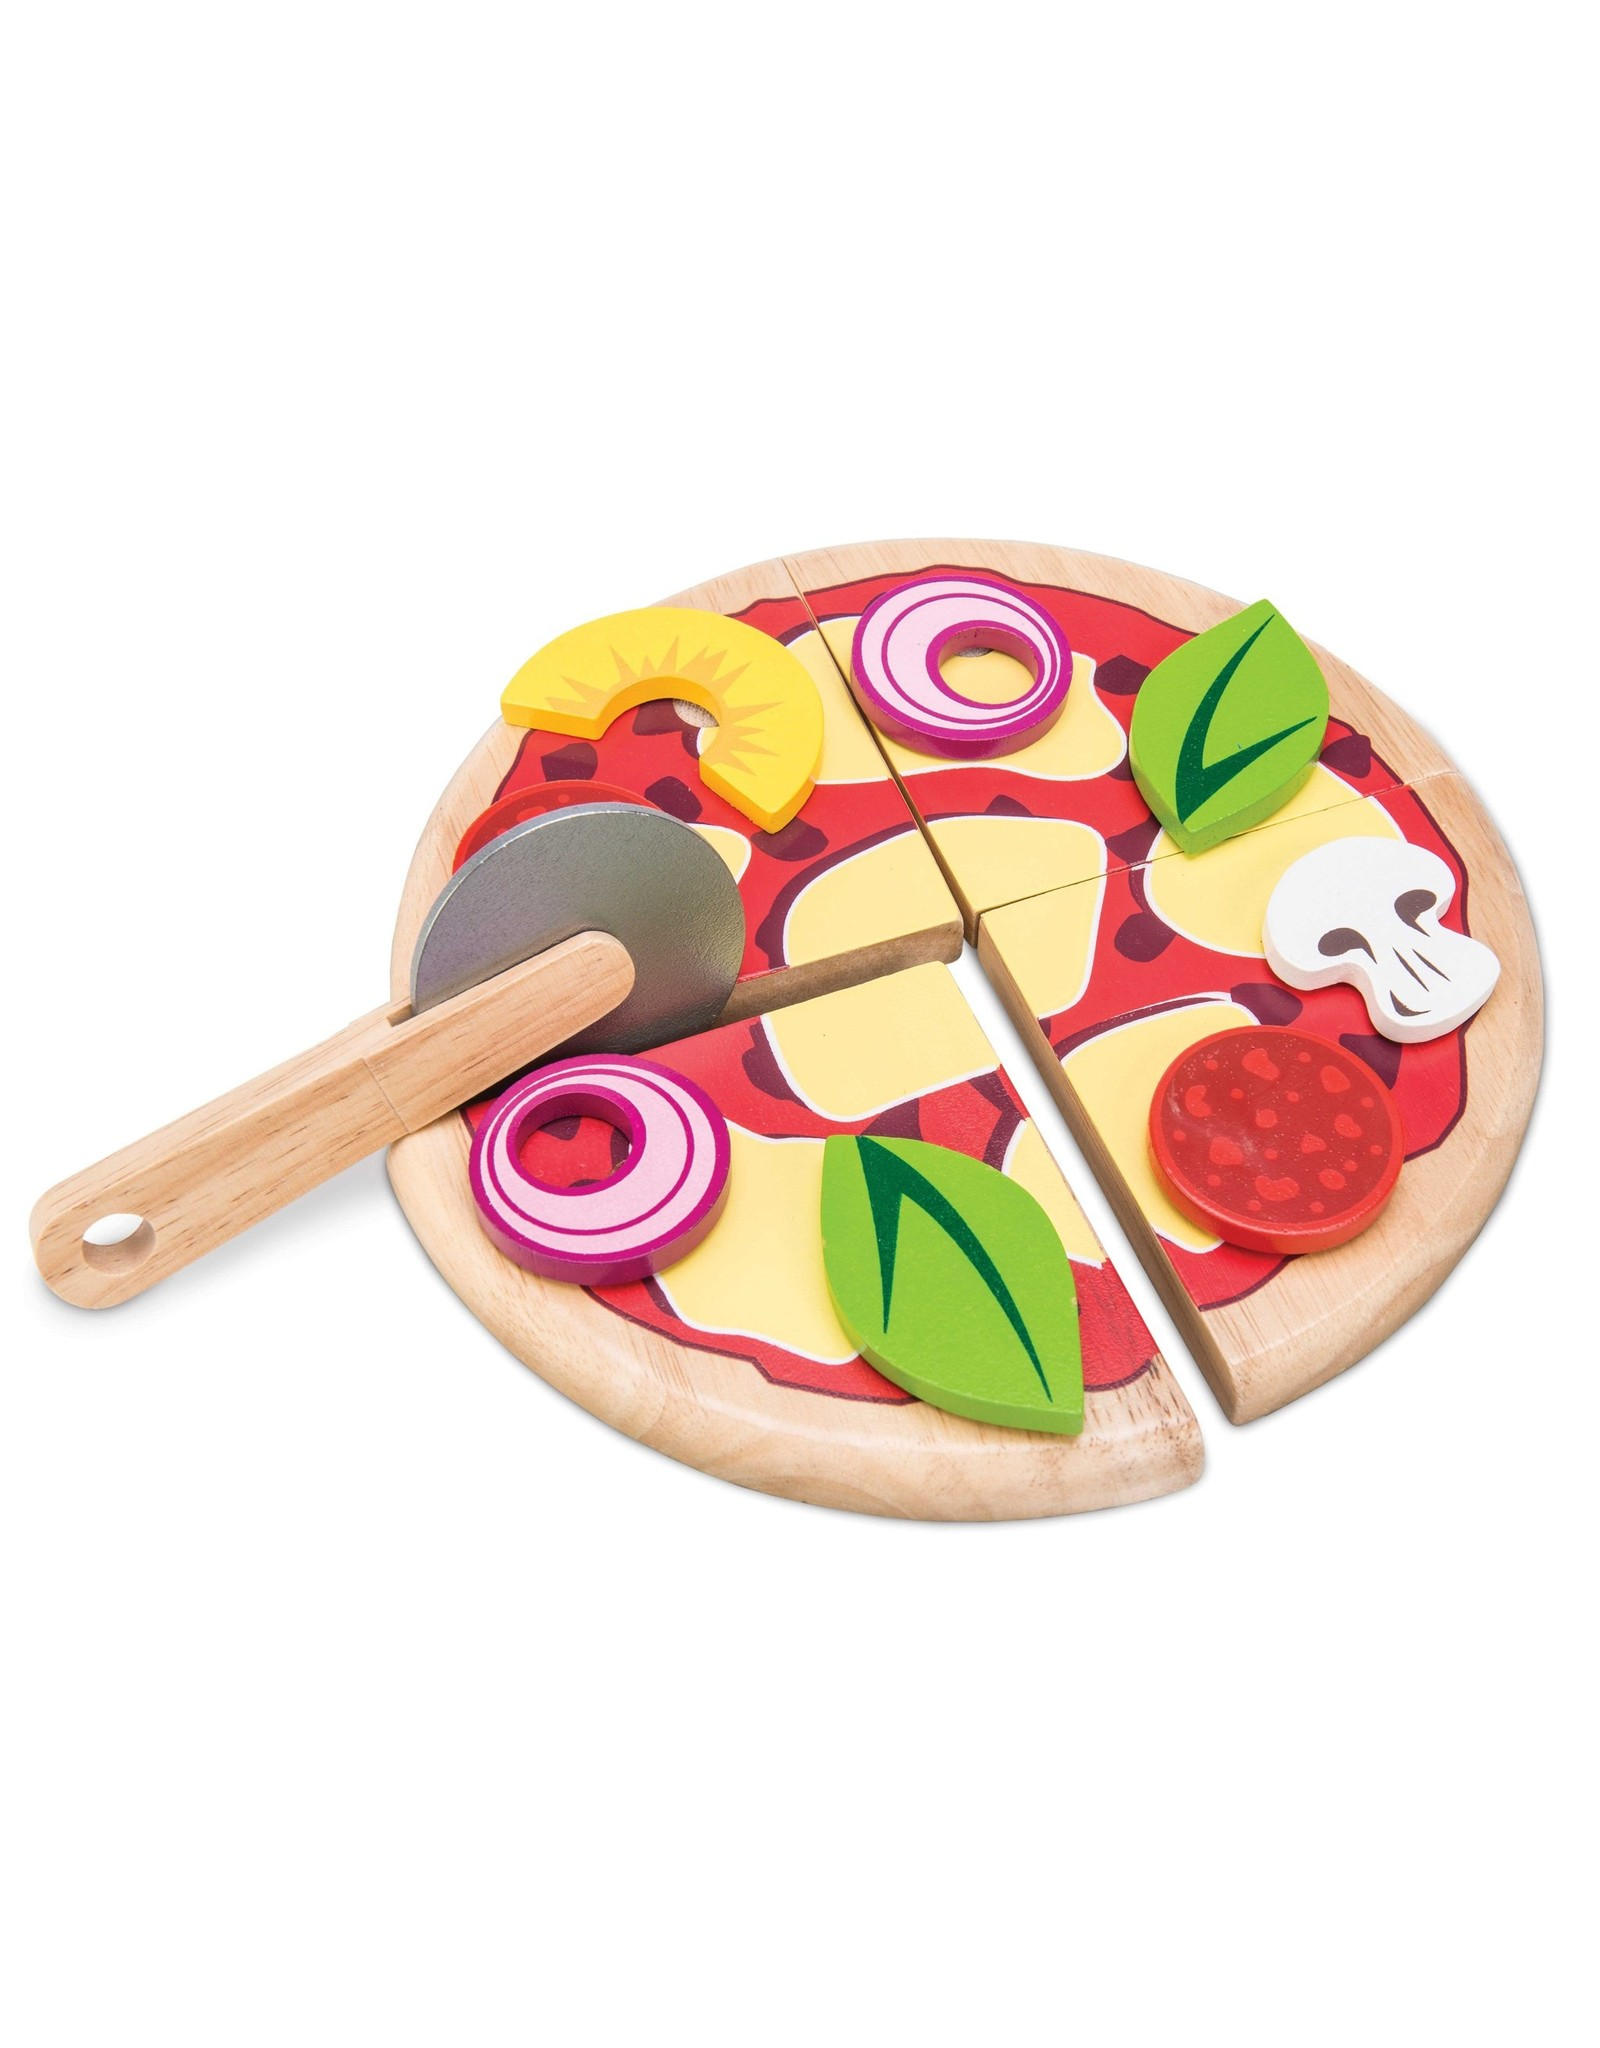 Le Toy Brand Pizza